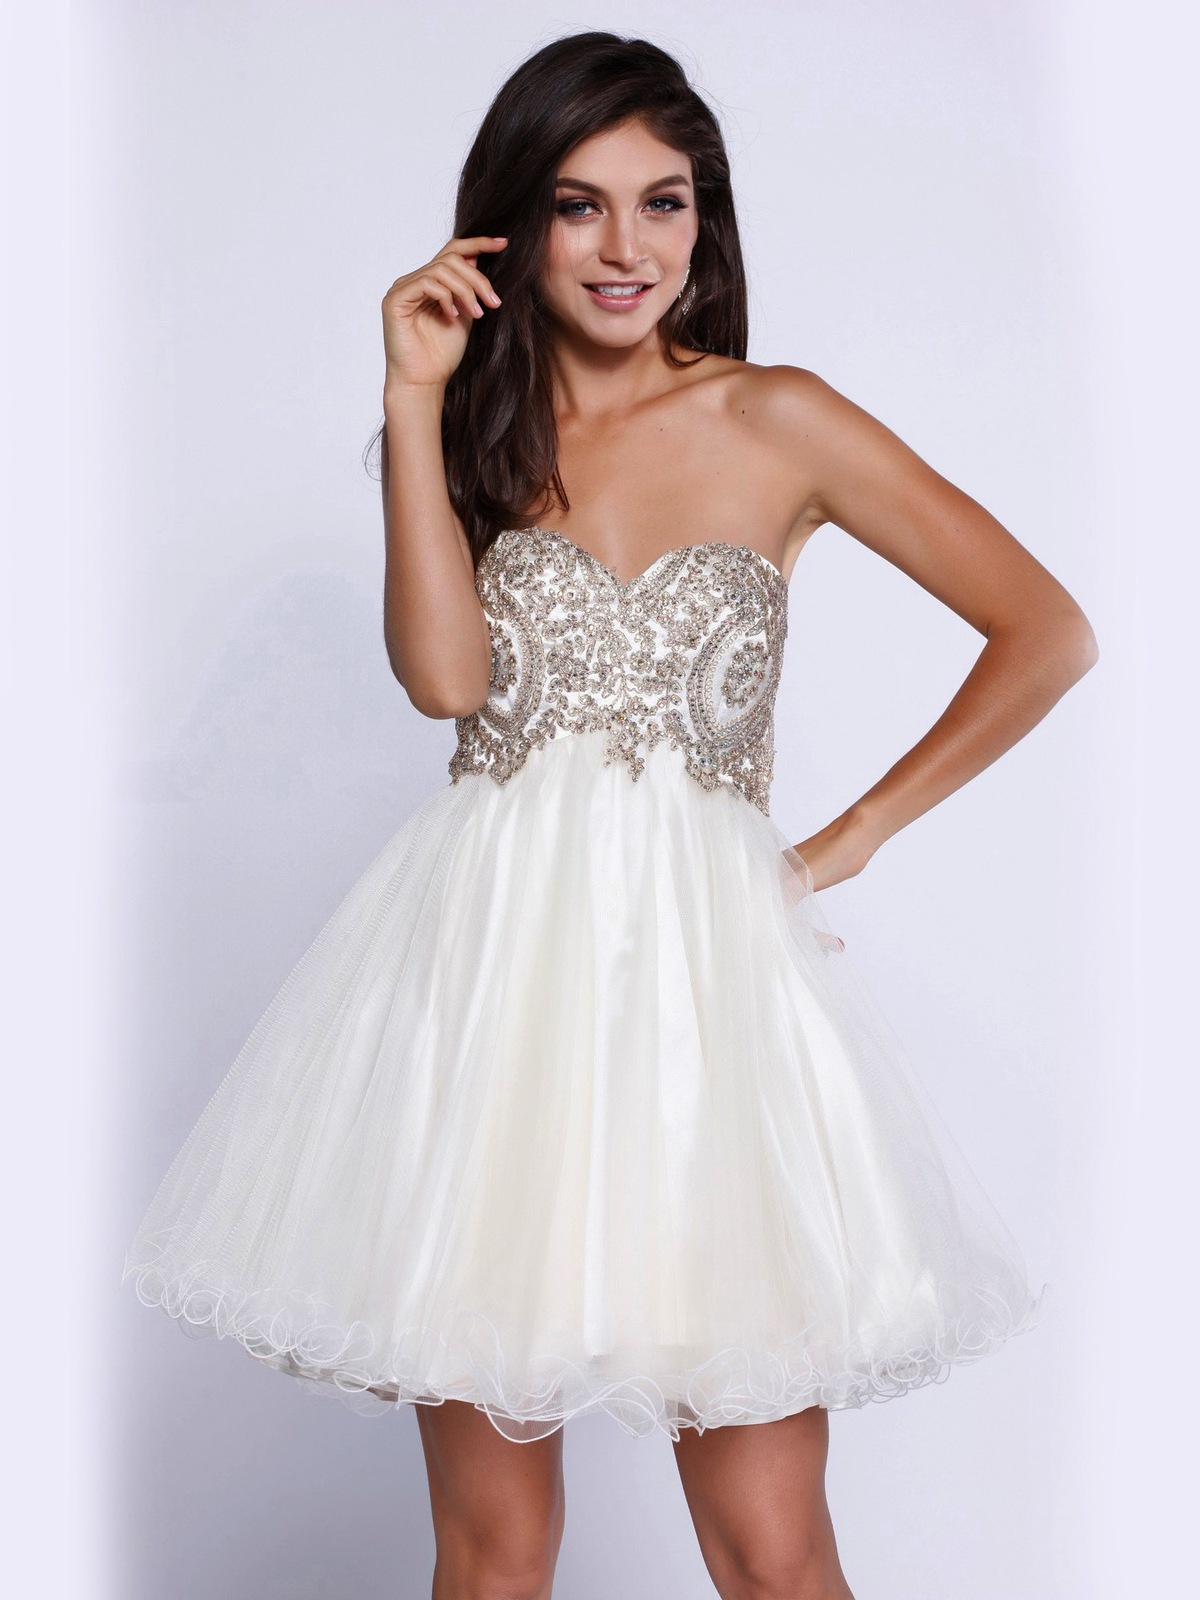 Strapless Sweetheart Short Prom Dress Sung Boutique L A